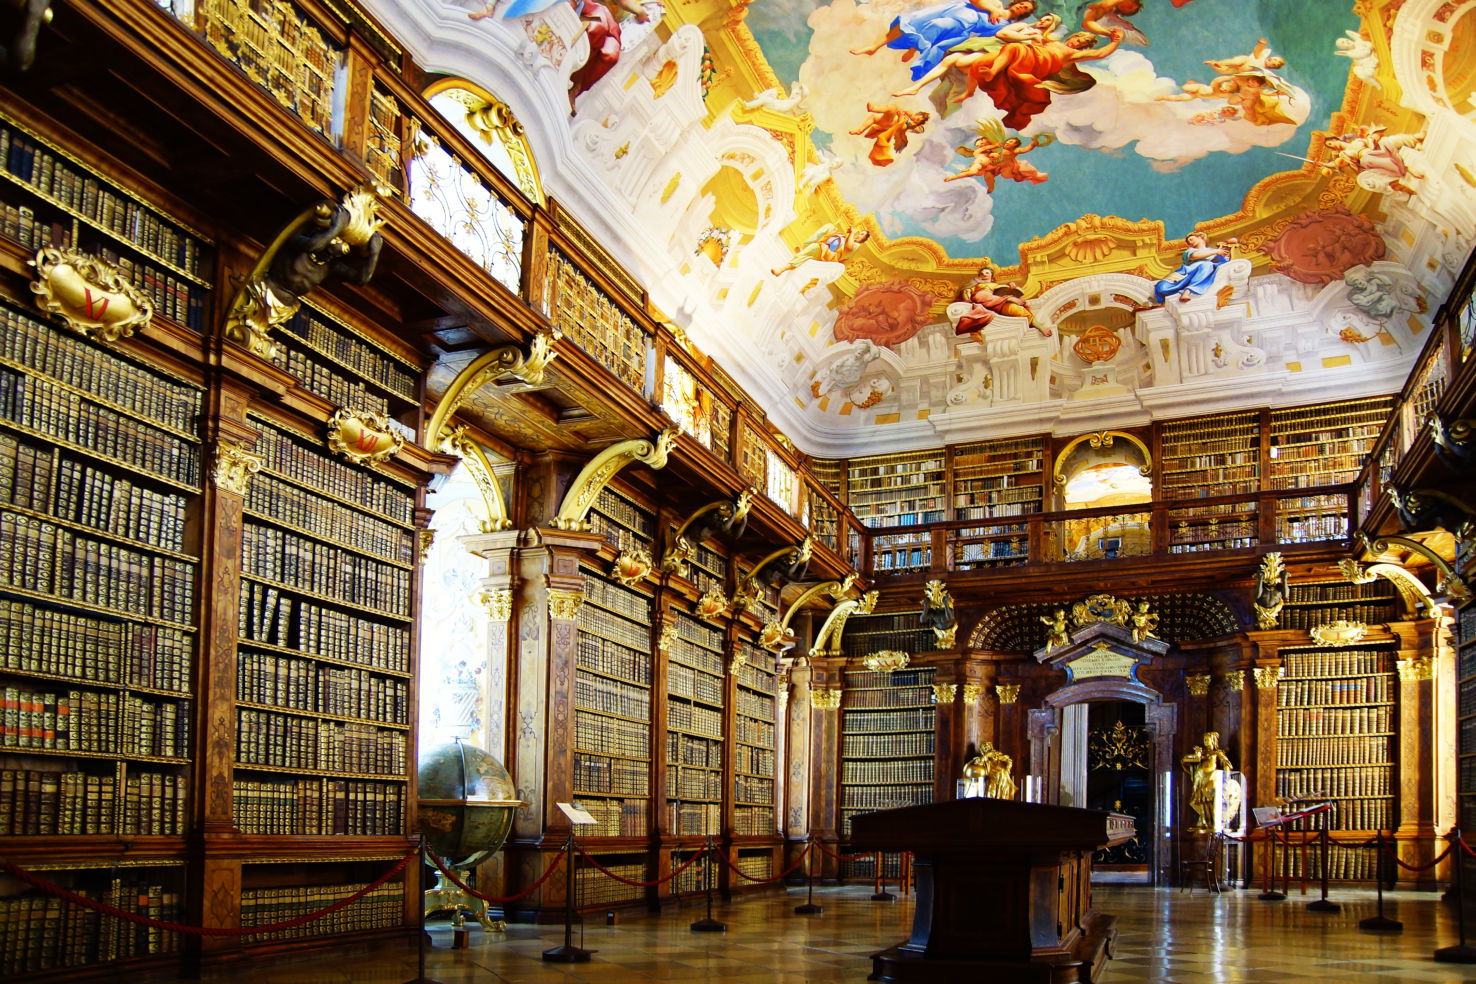 The gorgeous library at Melk Abbey, in Austria